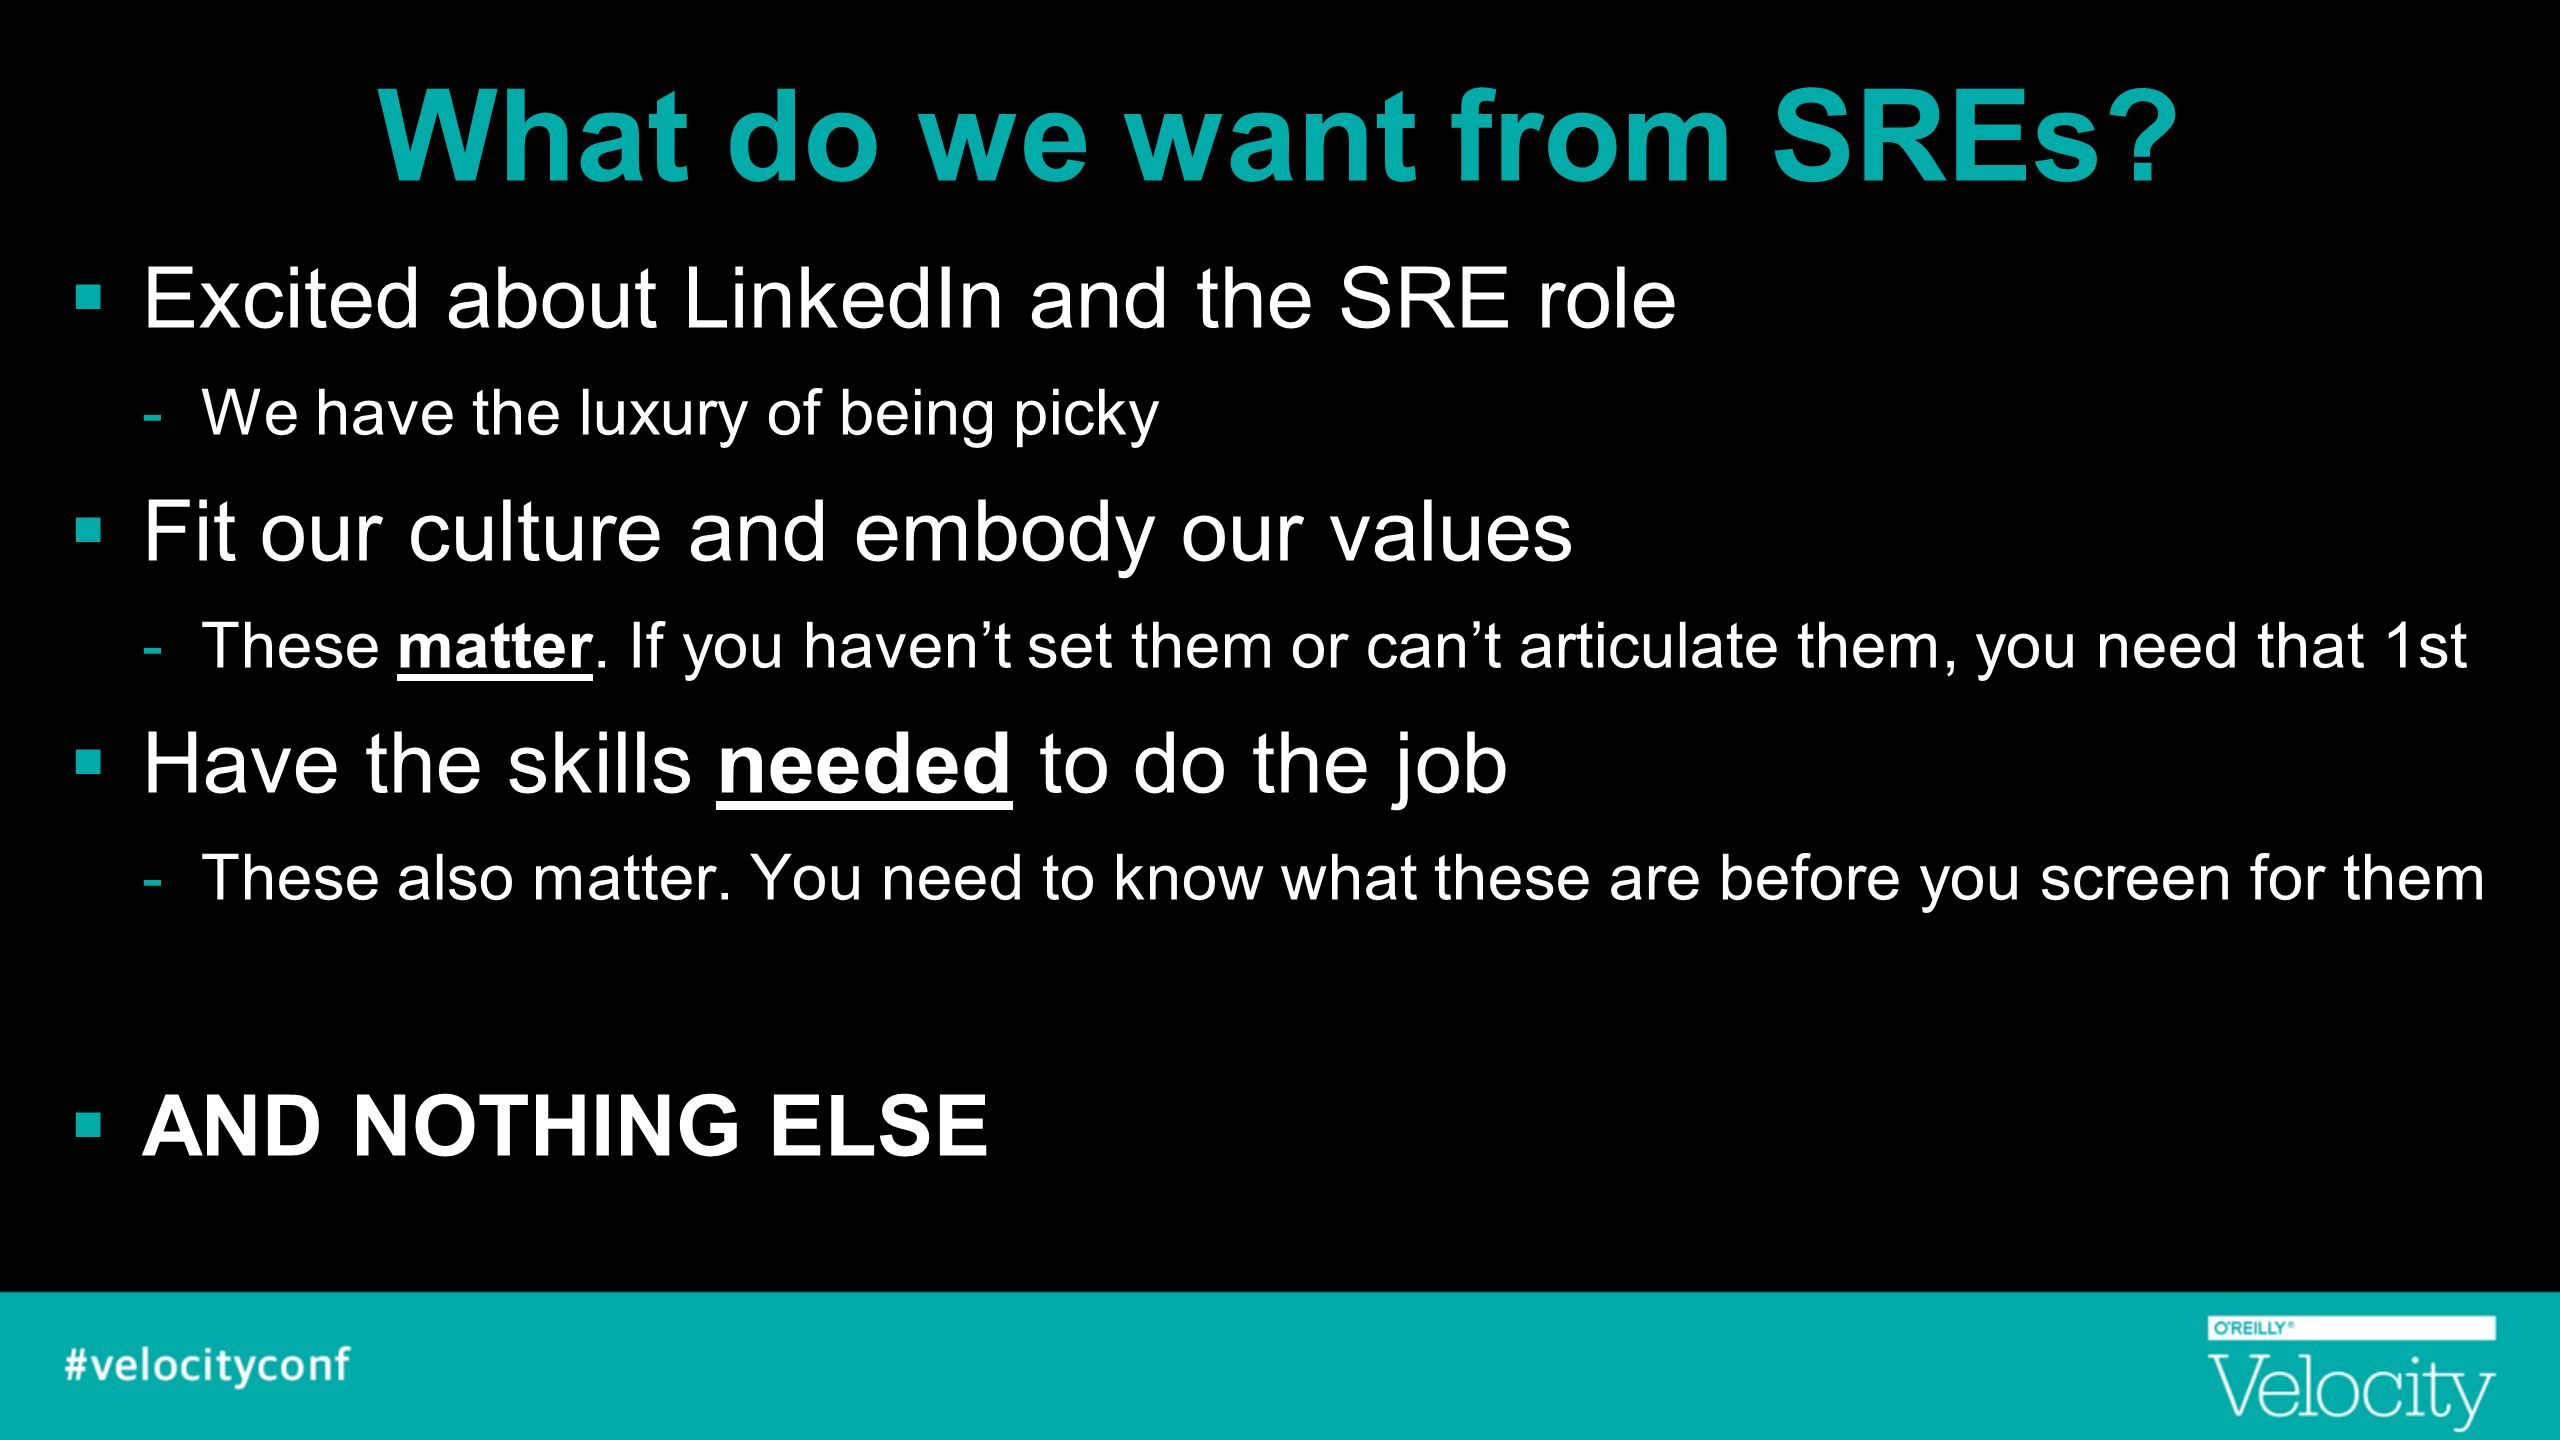 What do we want from SREs